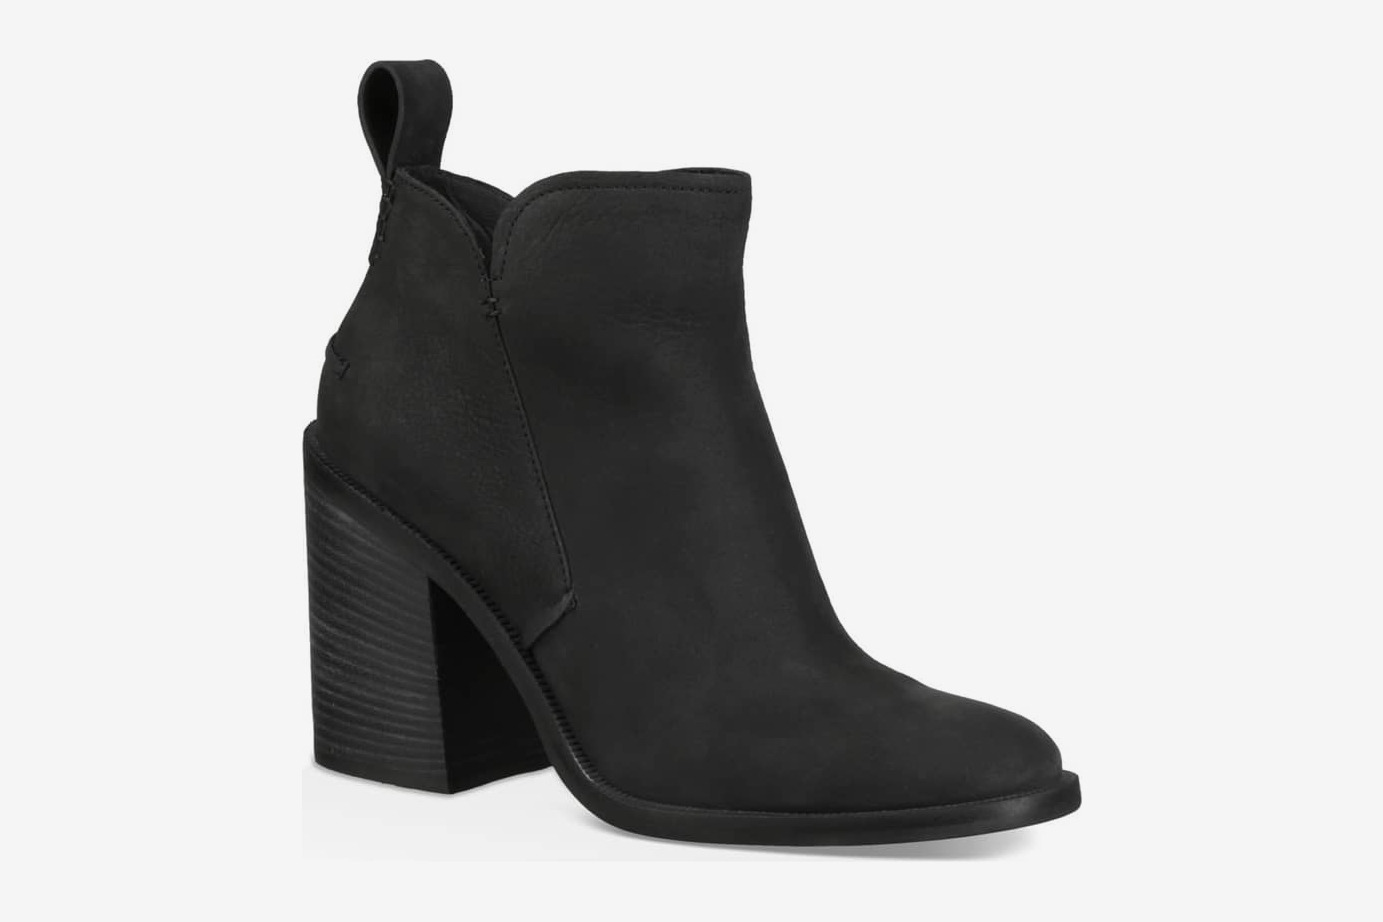 9108d2e8f5d6 Kensie Heeled Sandal at Amazon. Buy · Rate Bootie at Nordstrom. Buy ·  Pixley Bootie at Nordstrom